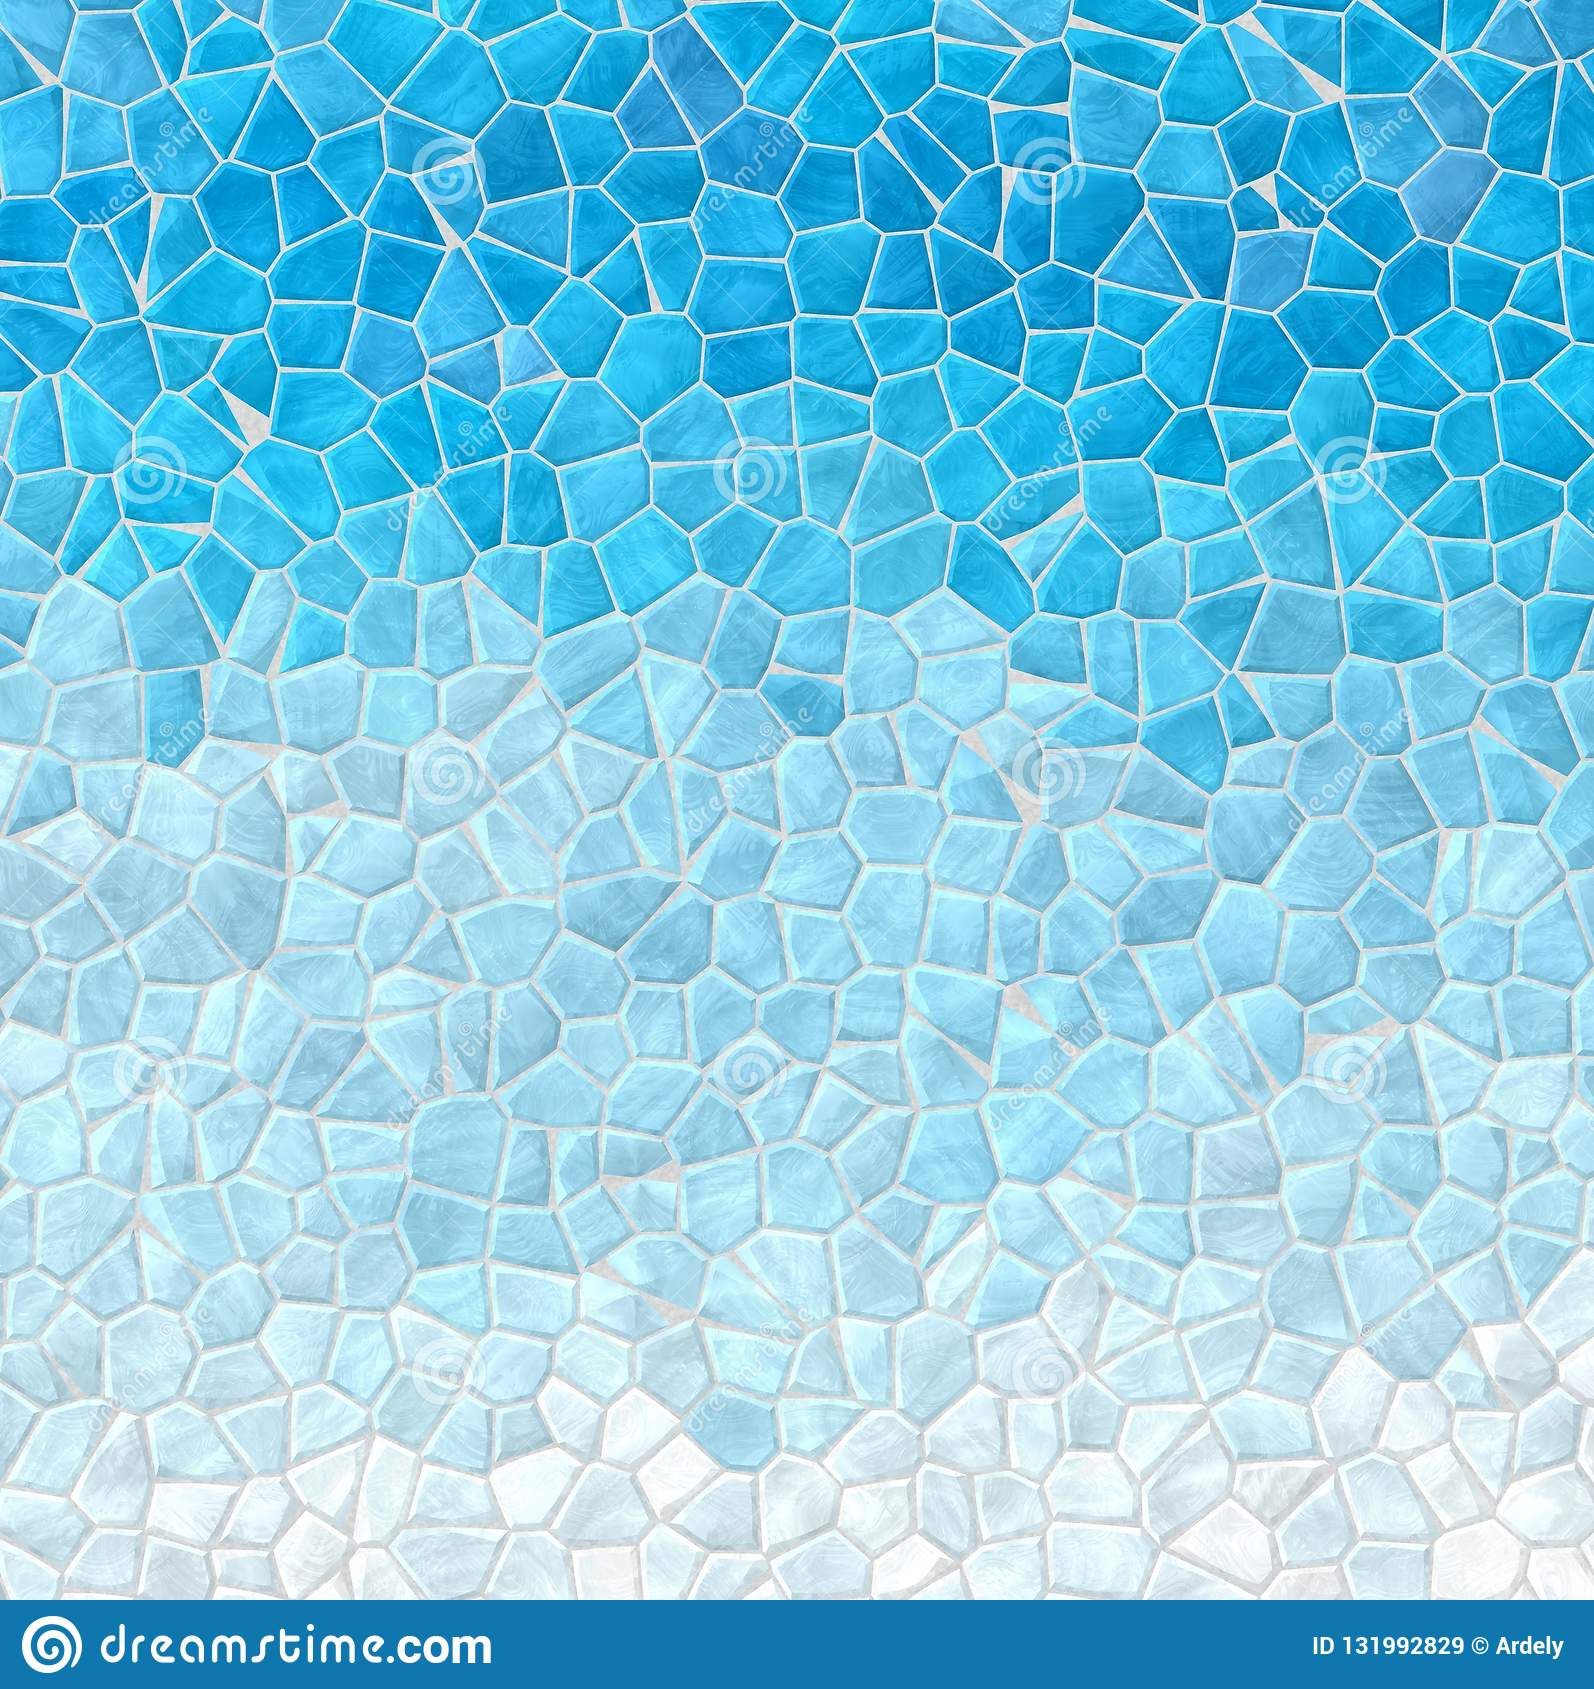 Abstract Marble Plastic Stony Mosaic Tiles Texture Background With Gray Grout Sky Blue White Gradient Colors Stock Illustration Illustration Of Graininess Collage 131992829